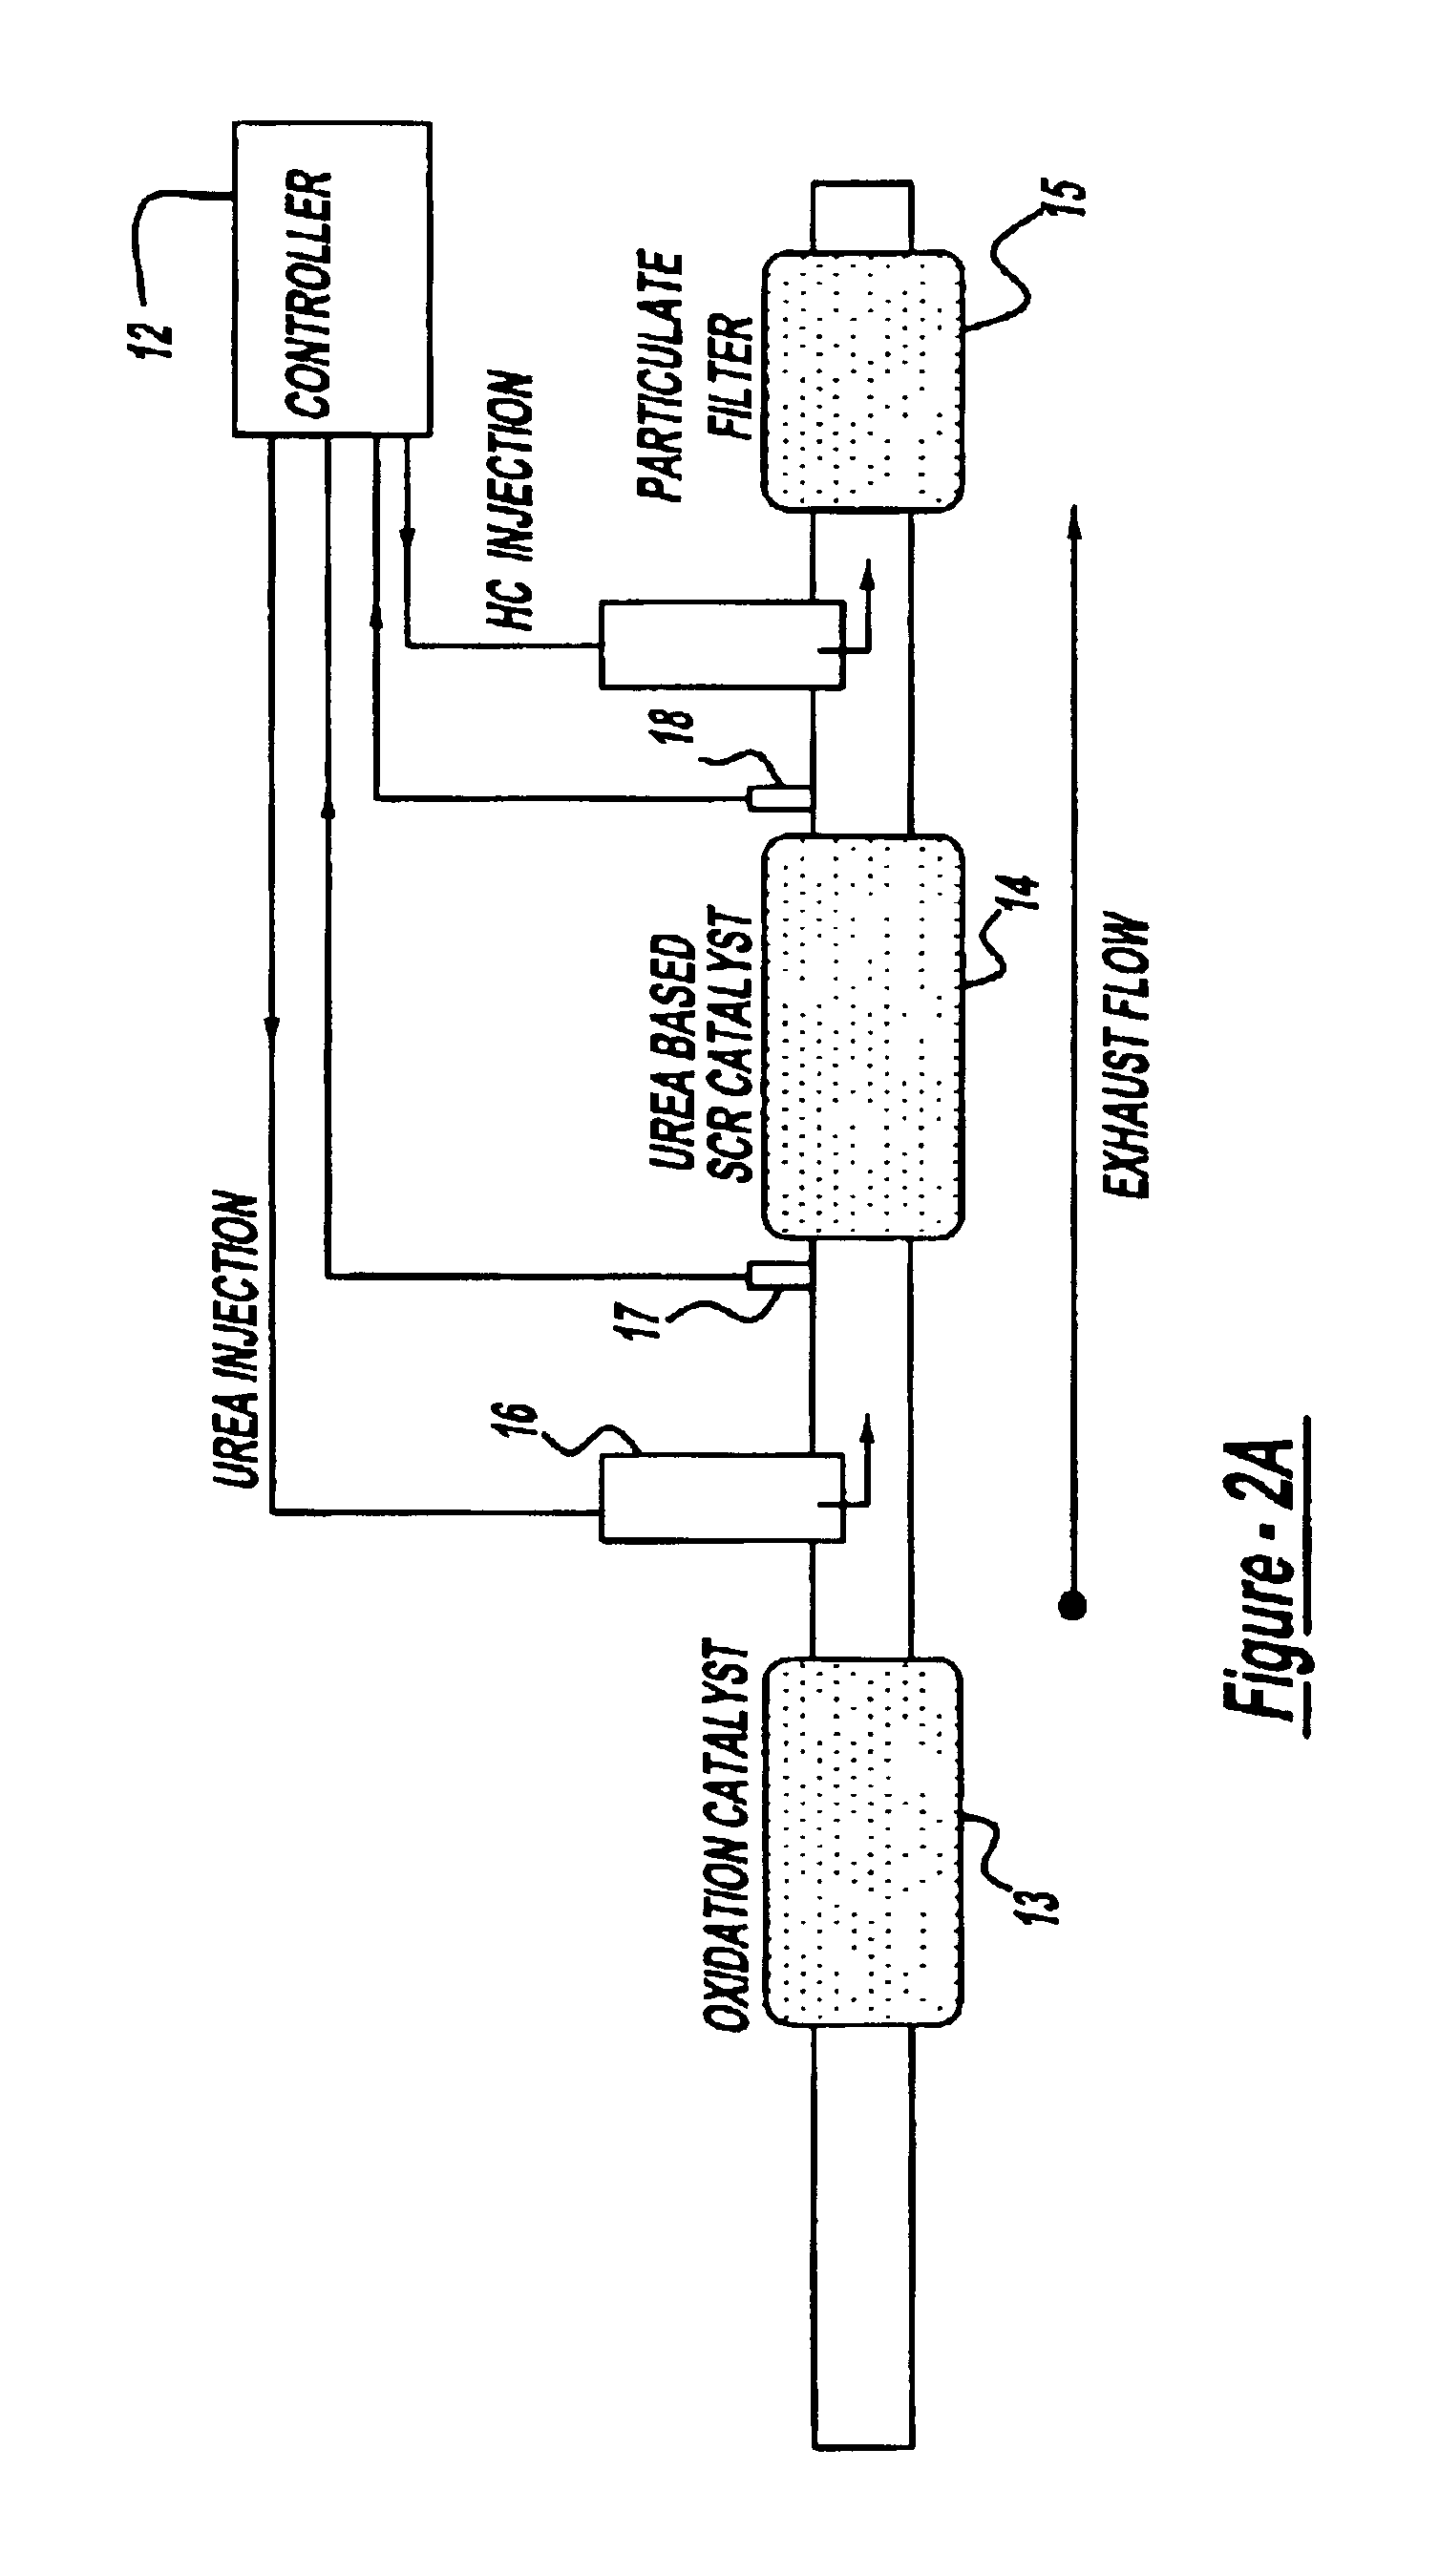 Patent US6928806 - Exhaust gas aftertreatment systems